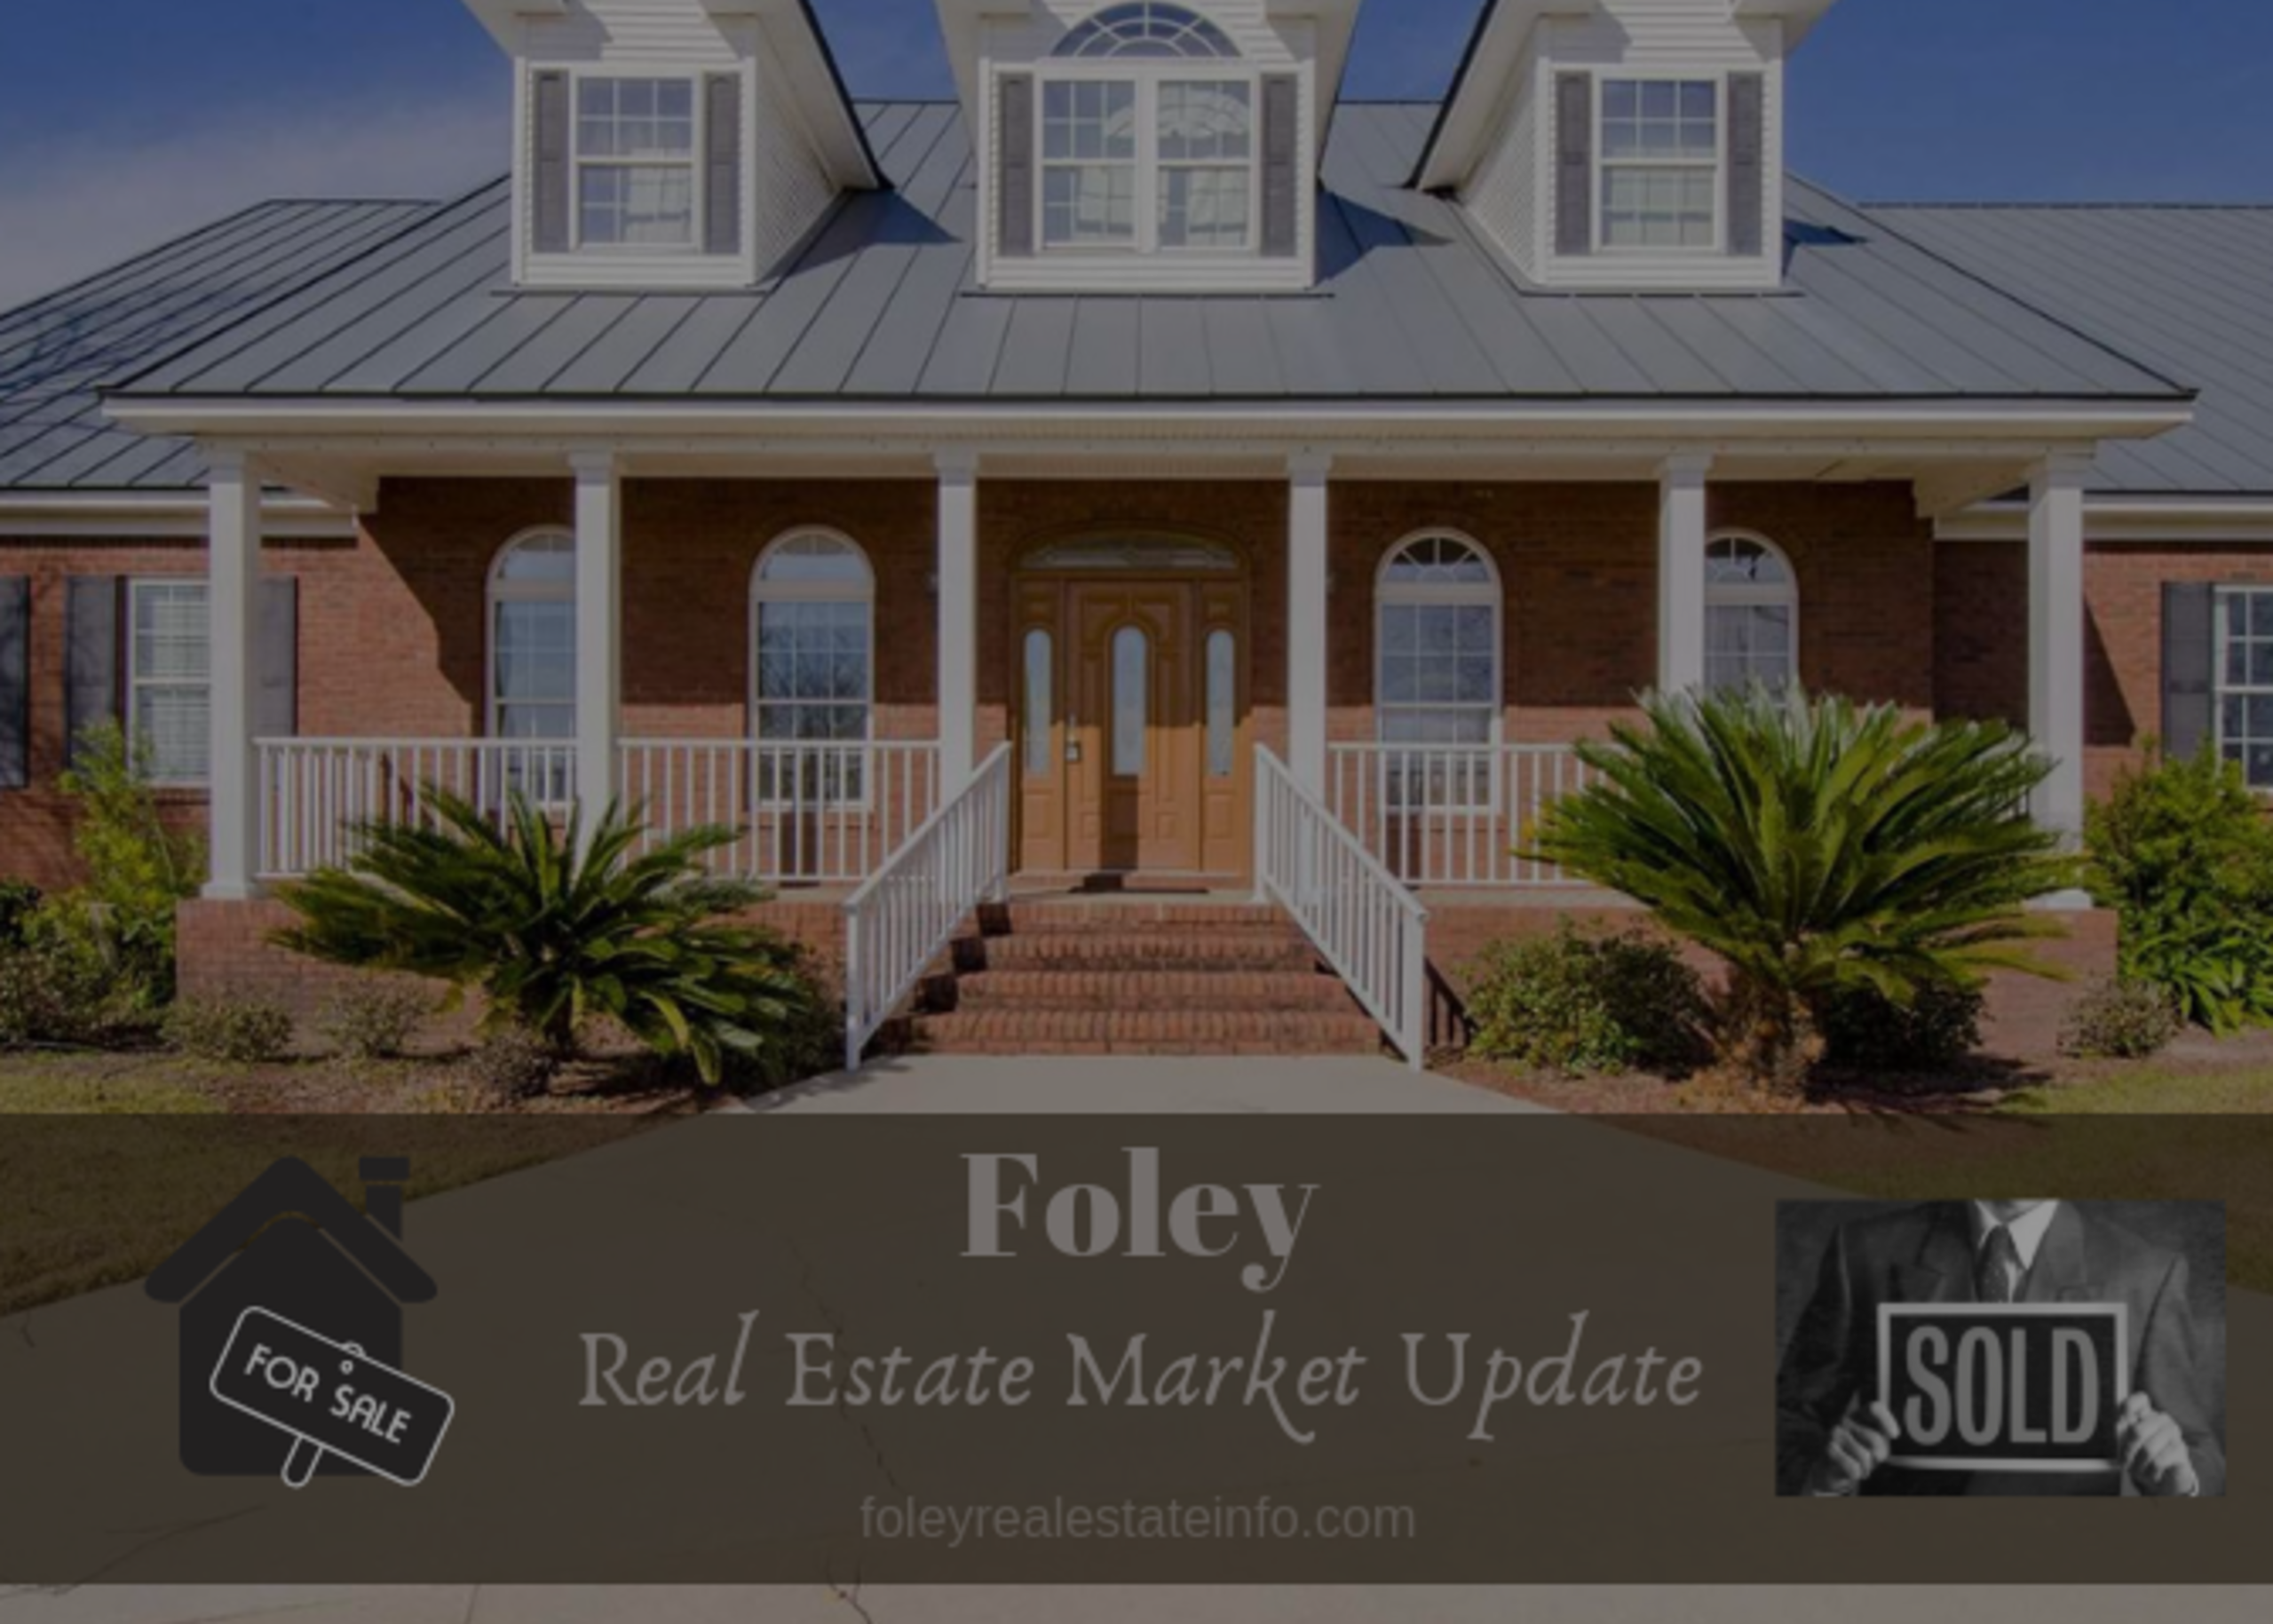 Foley Real Estate Market Update – April 2019